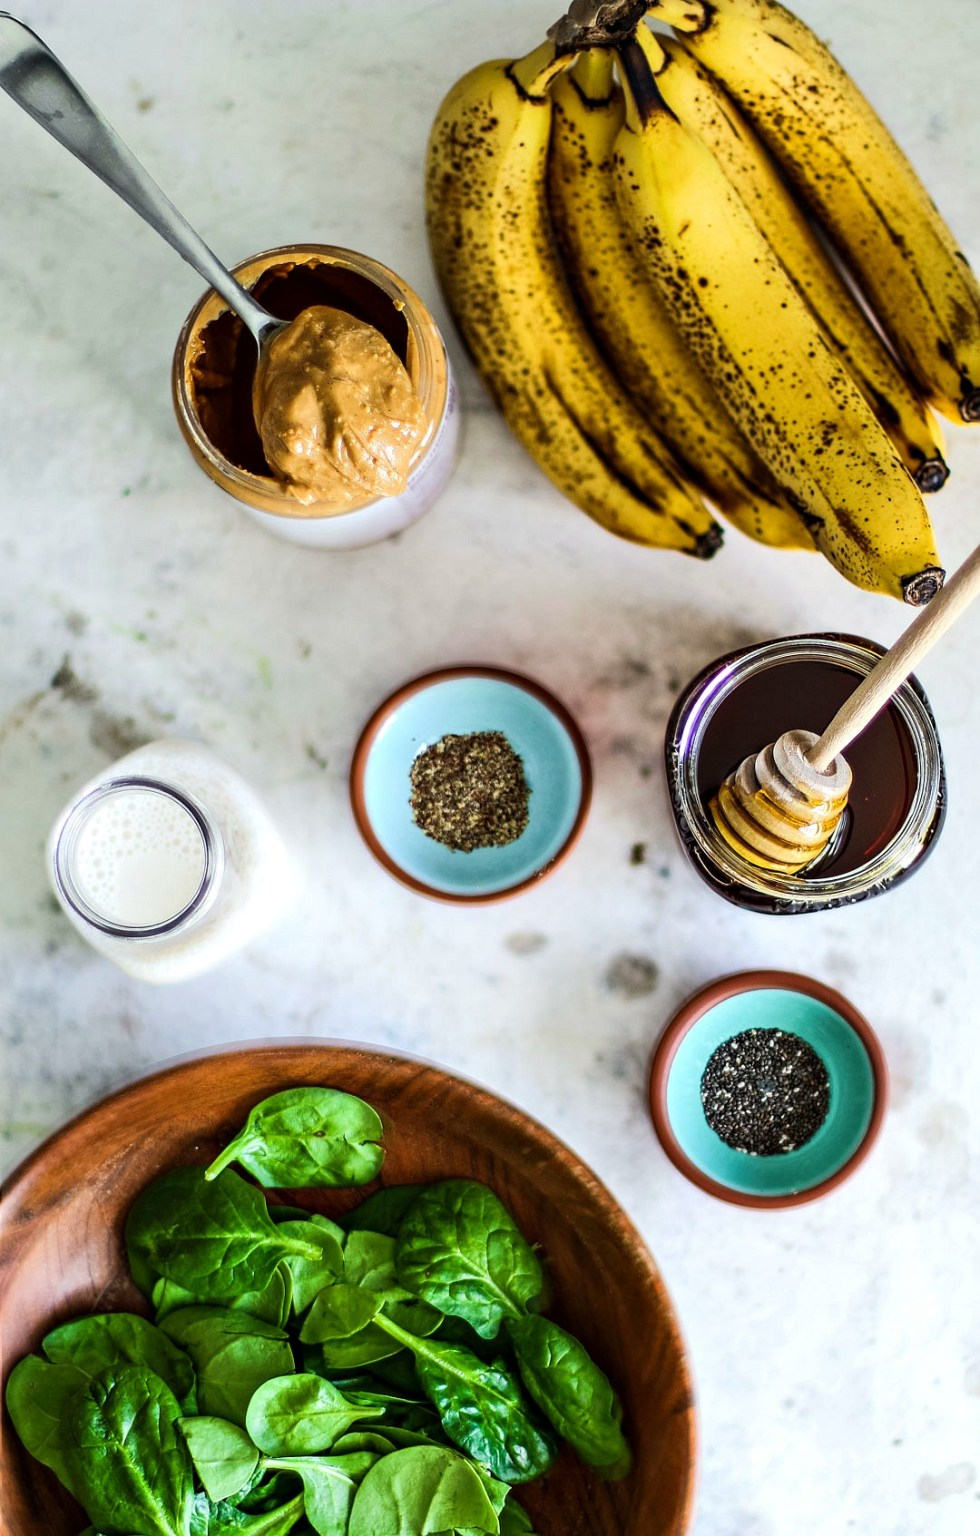 Peanut Butter Banana Spinach Smoothie ingredients on table.